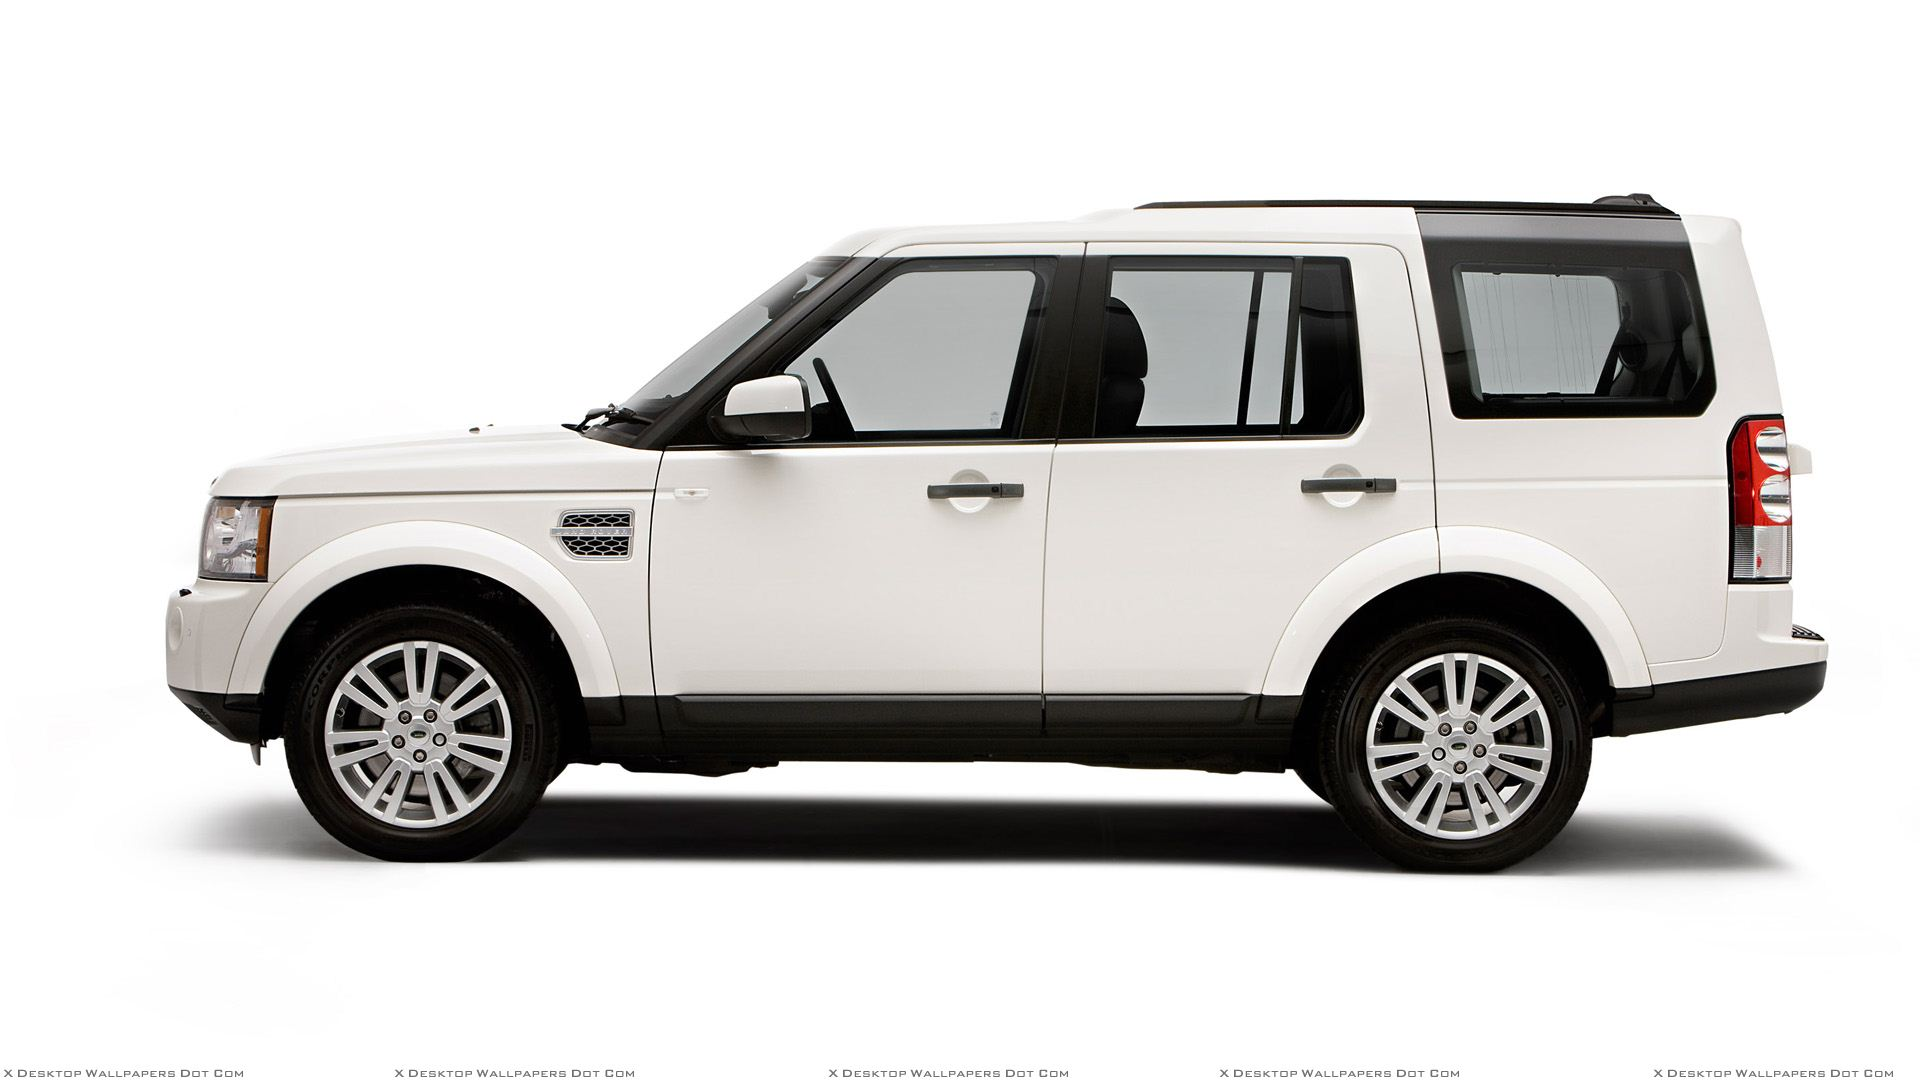 Land Rover Discovery Wallpapers, Photos & Images in HD